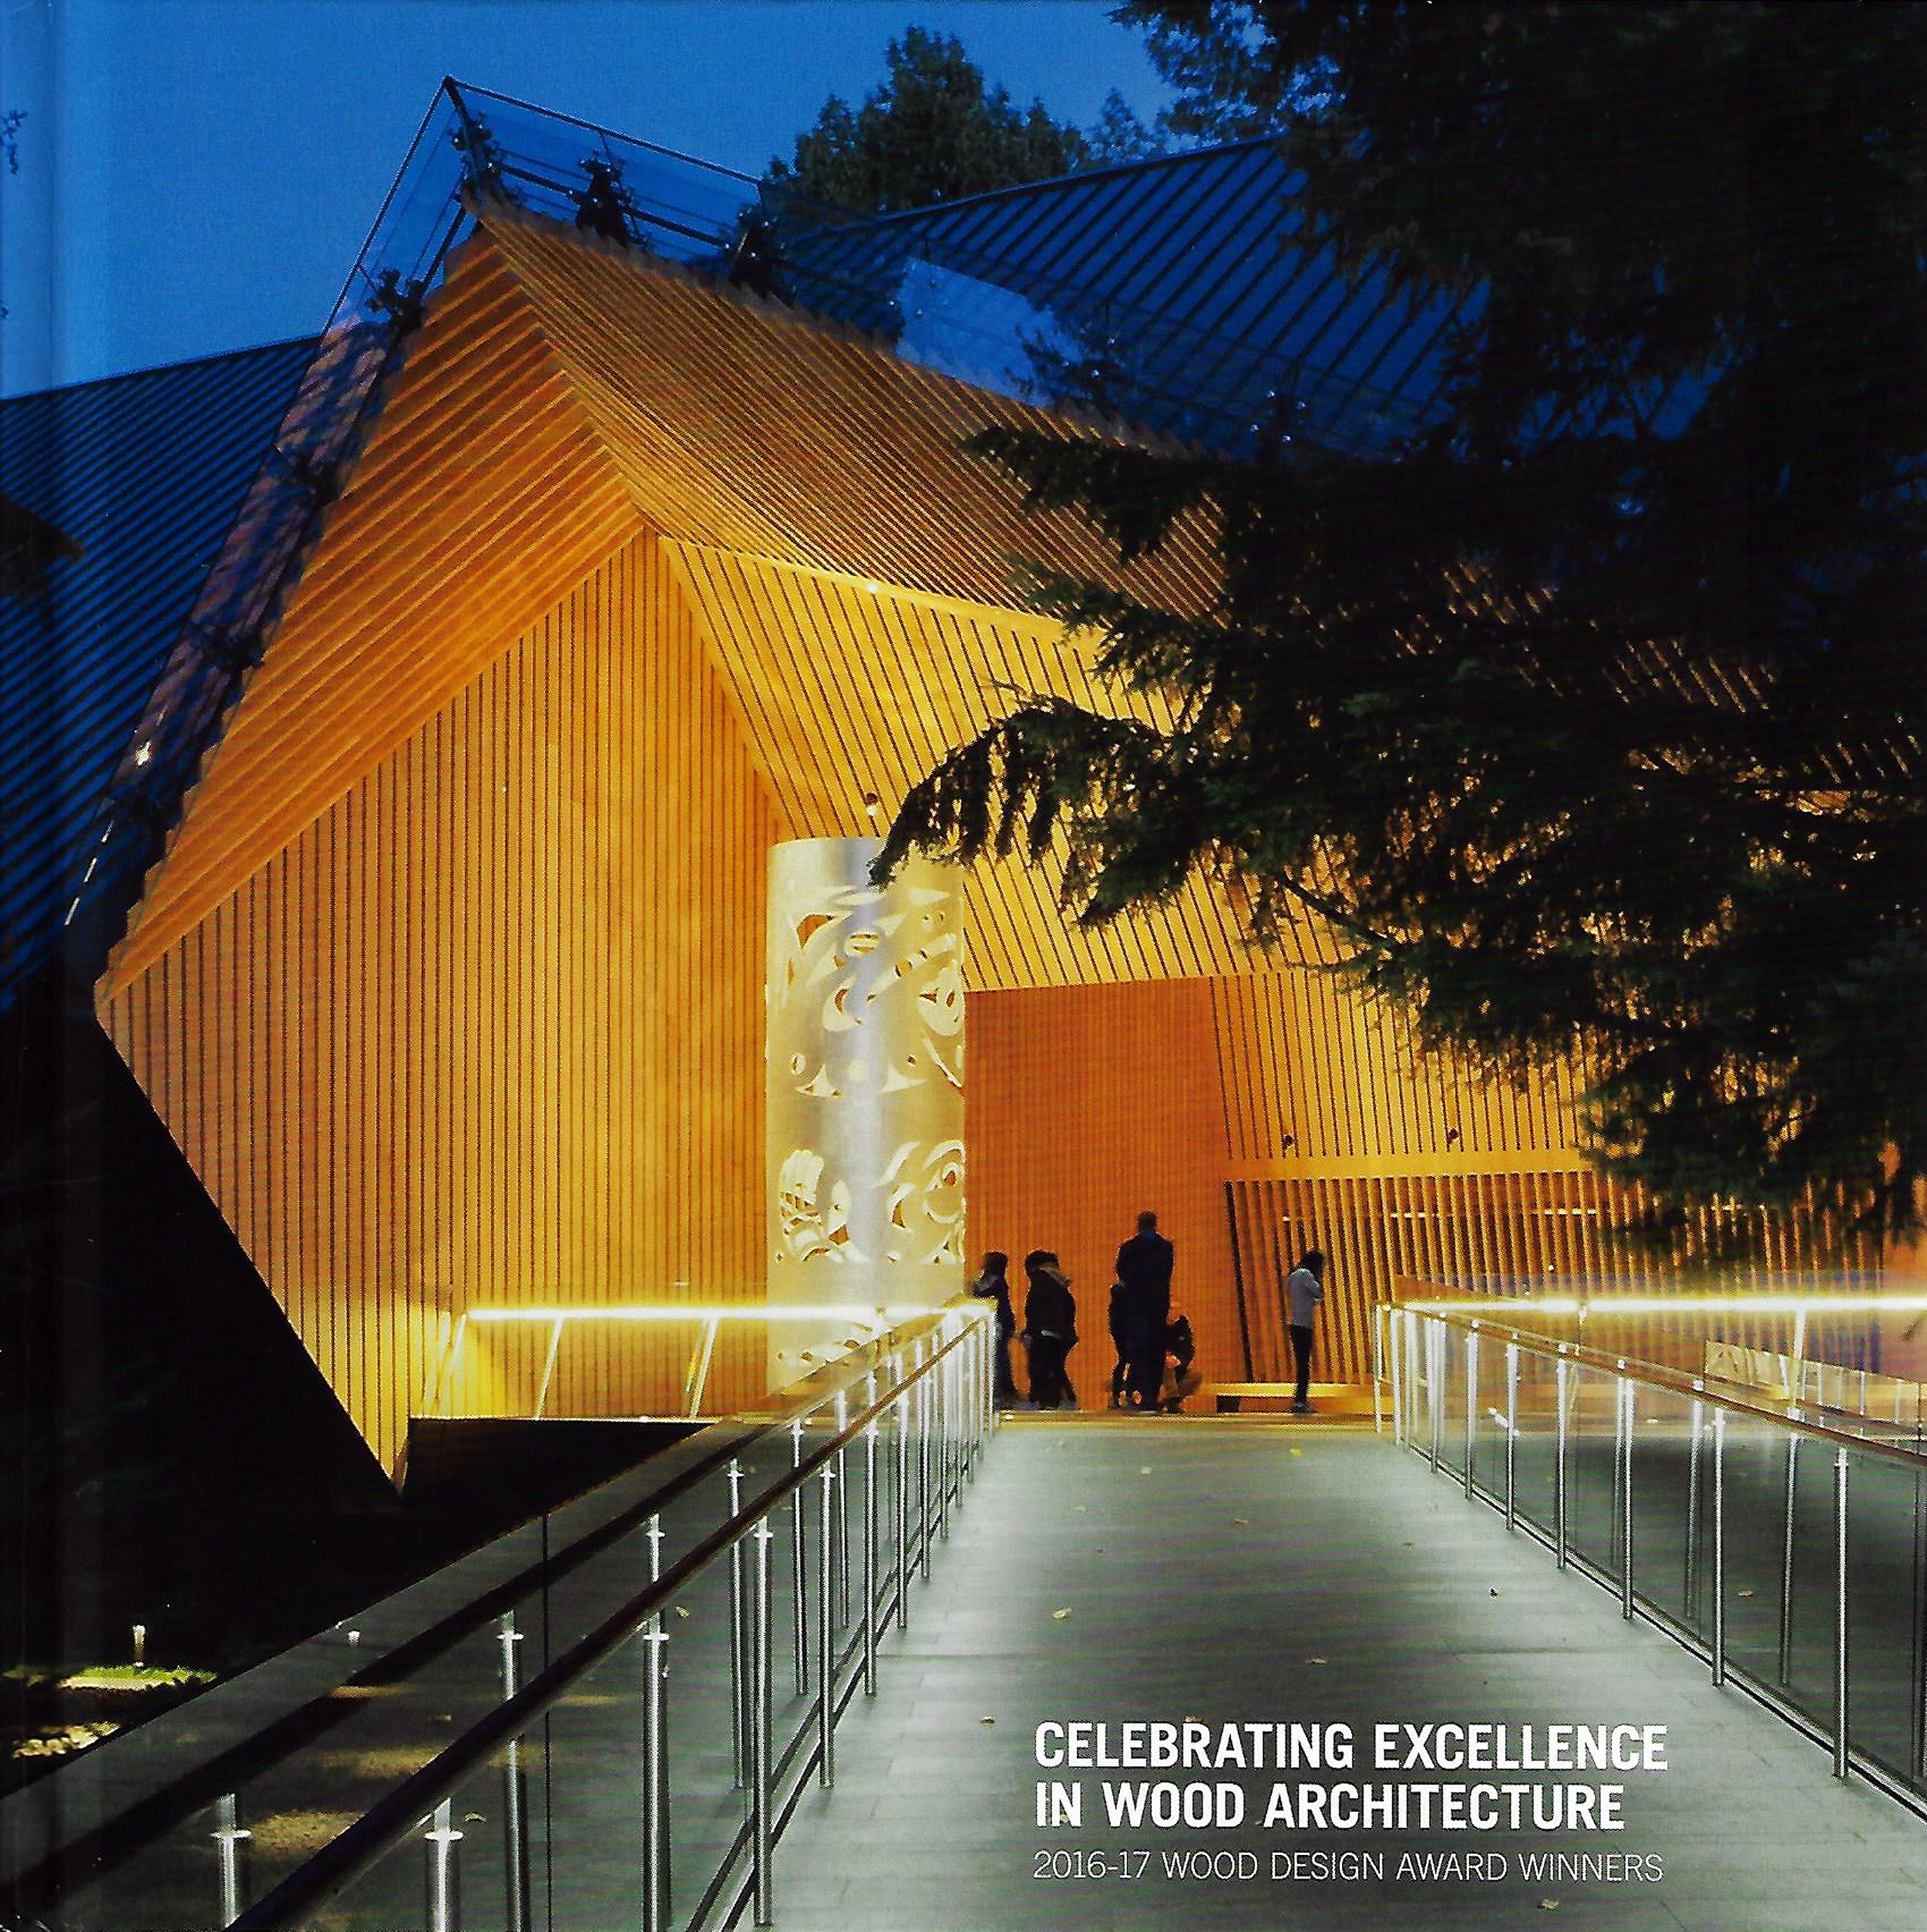 CELEBRATING EXCELLENCE IN WOOD ARCHITECTURE 2016-2017